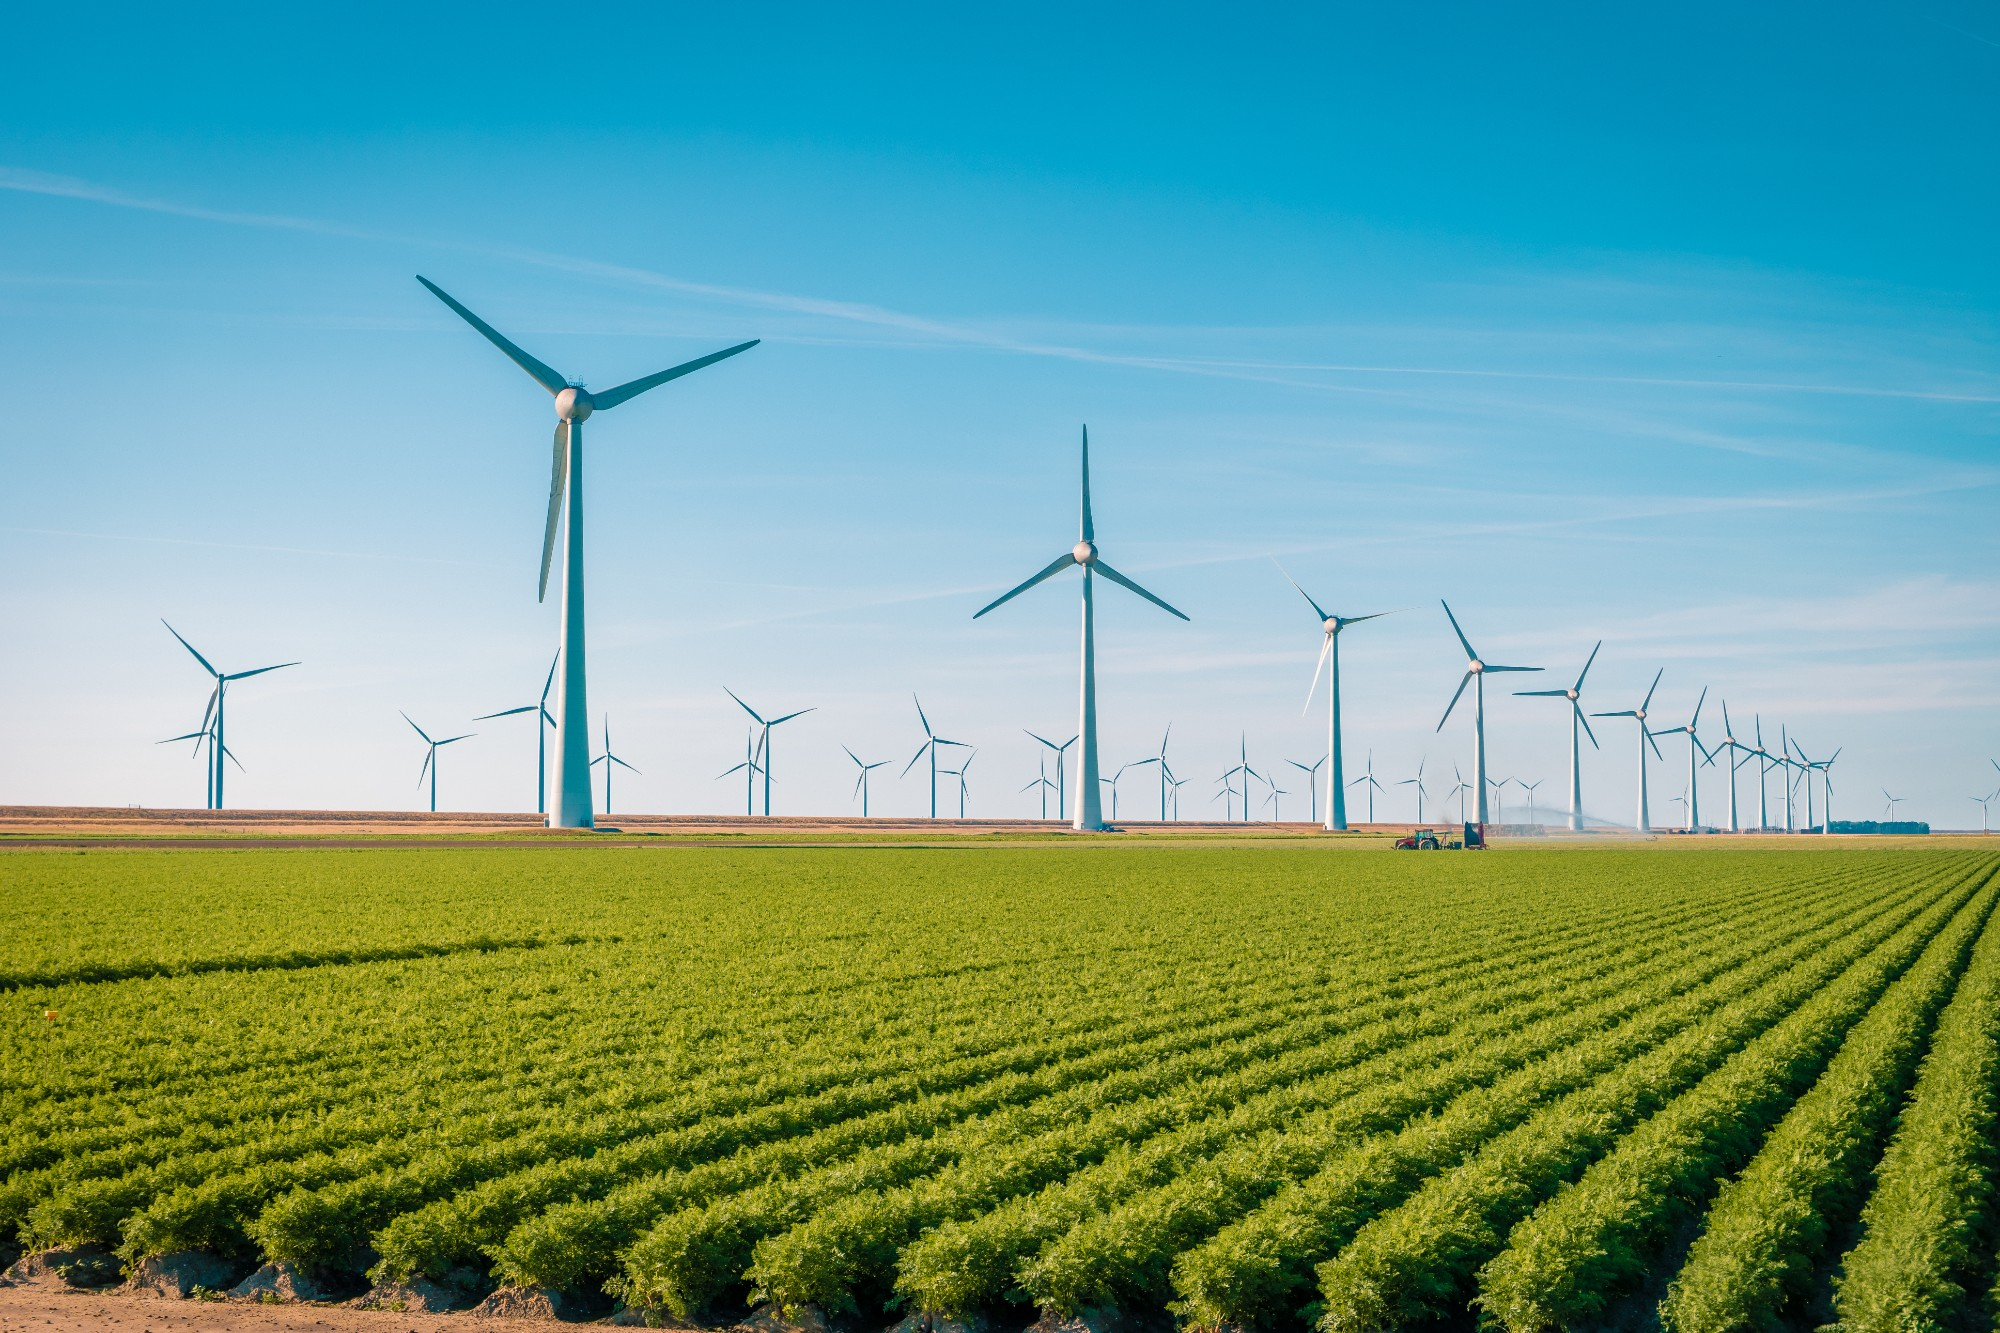 LA approves 100% clean energy by 2035 target, a decade ahead of prior goal